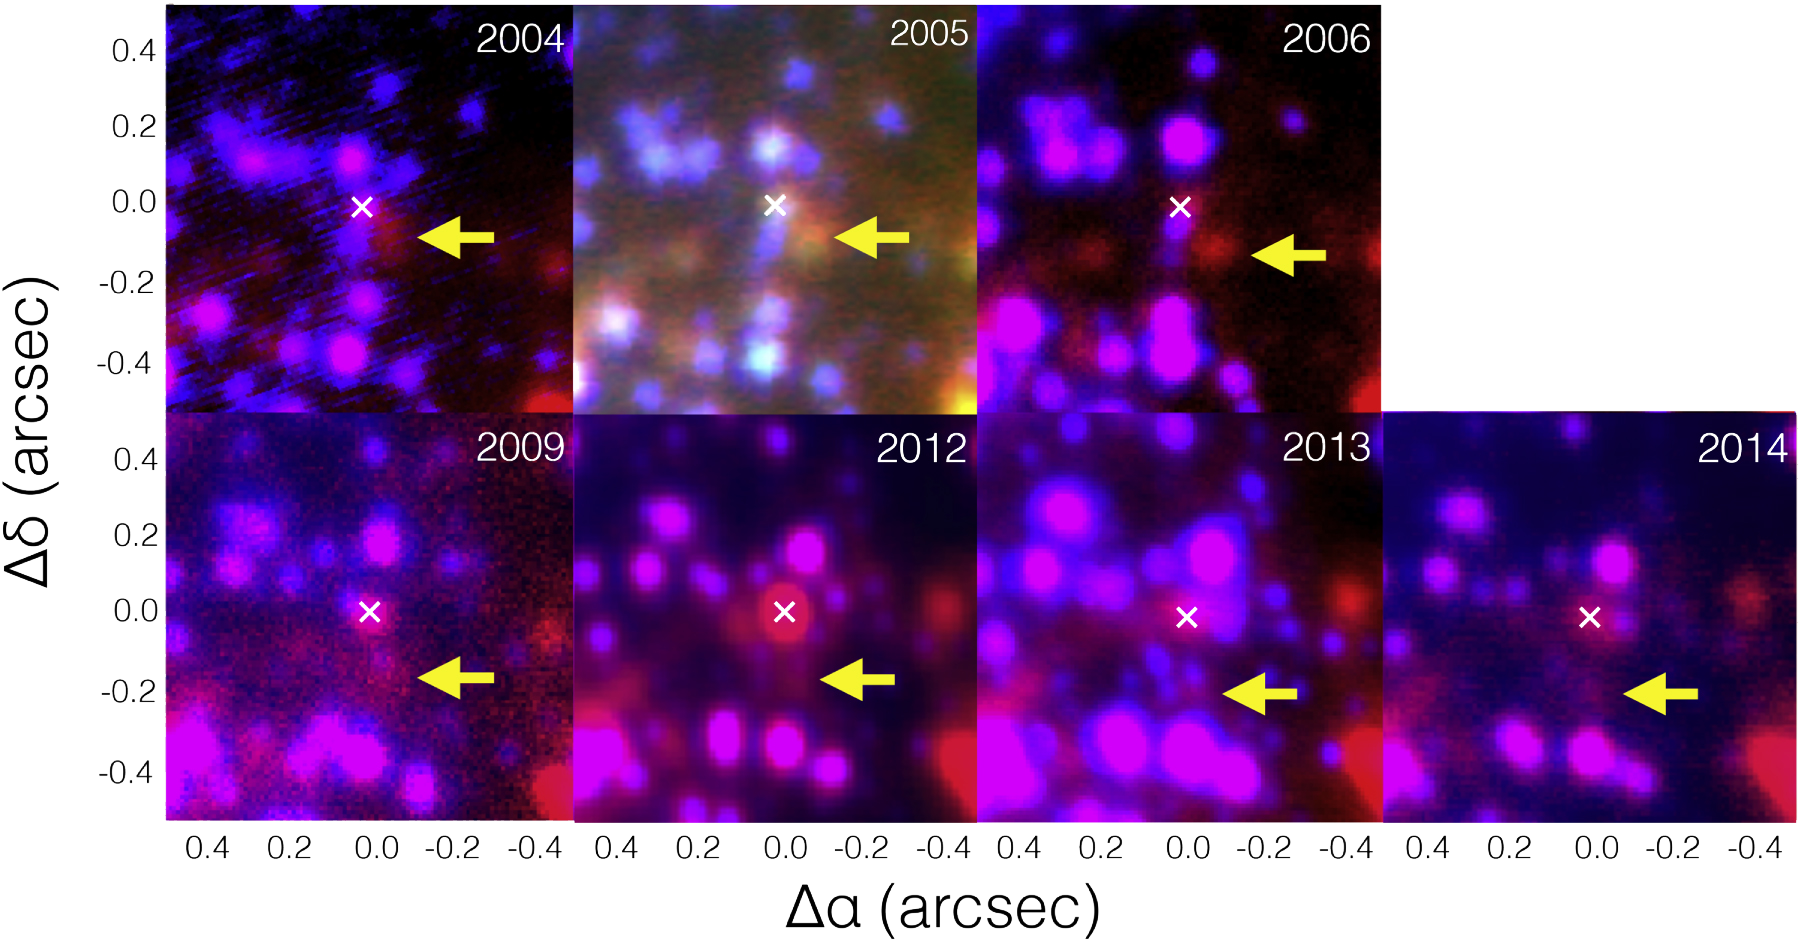 Images of the G1 object (indicated by the yellow arrow), showing its movement around the supermassive black hole (marked with an x).